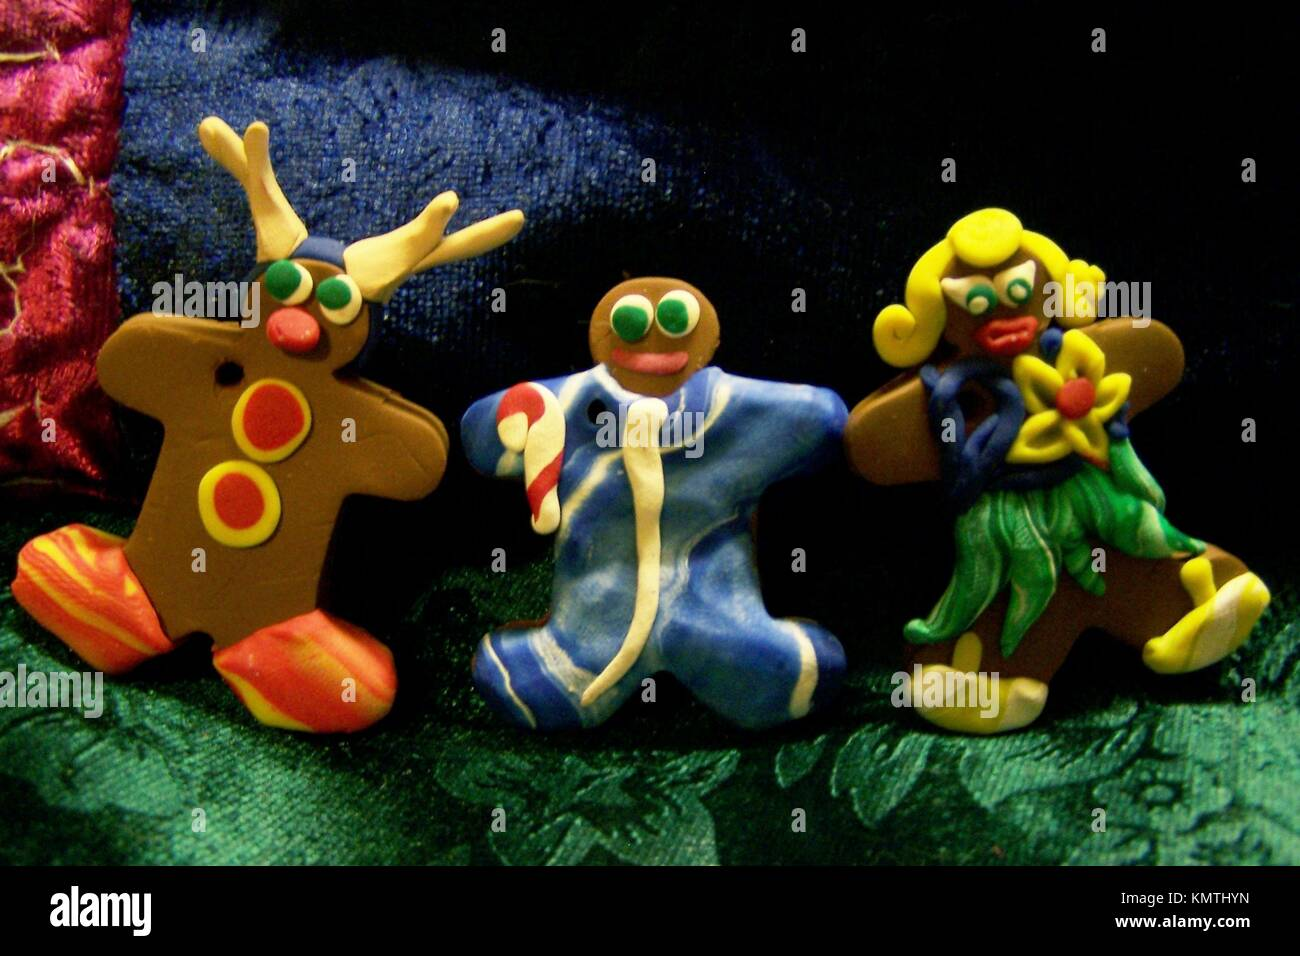 A trio of gingerbread people made from bakeable clay to be used as ornaments - Stock Image